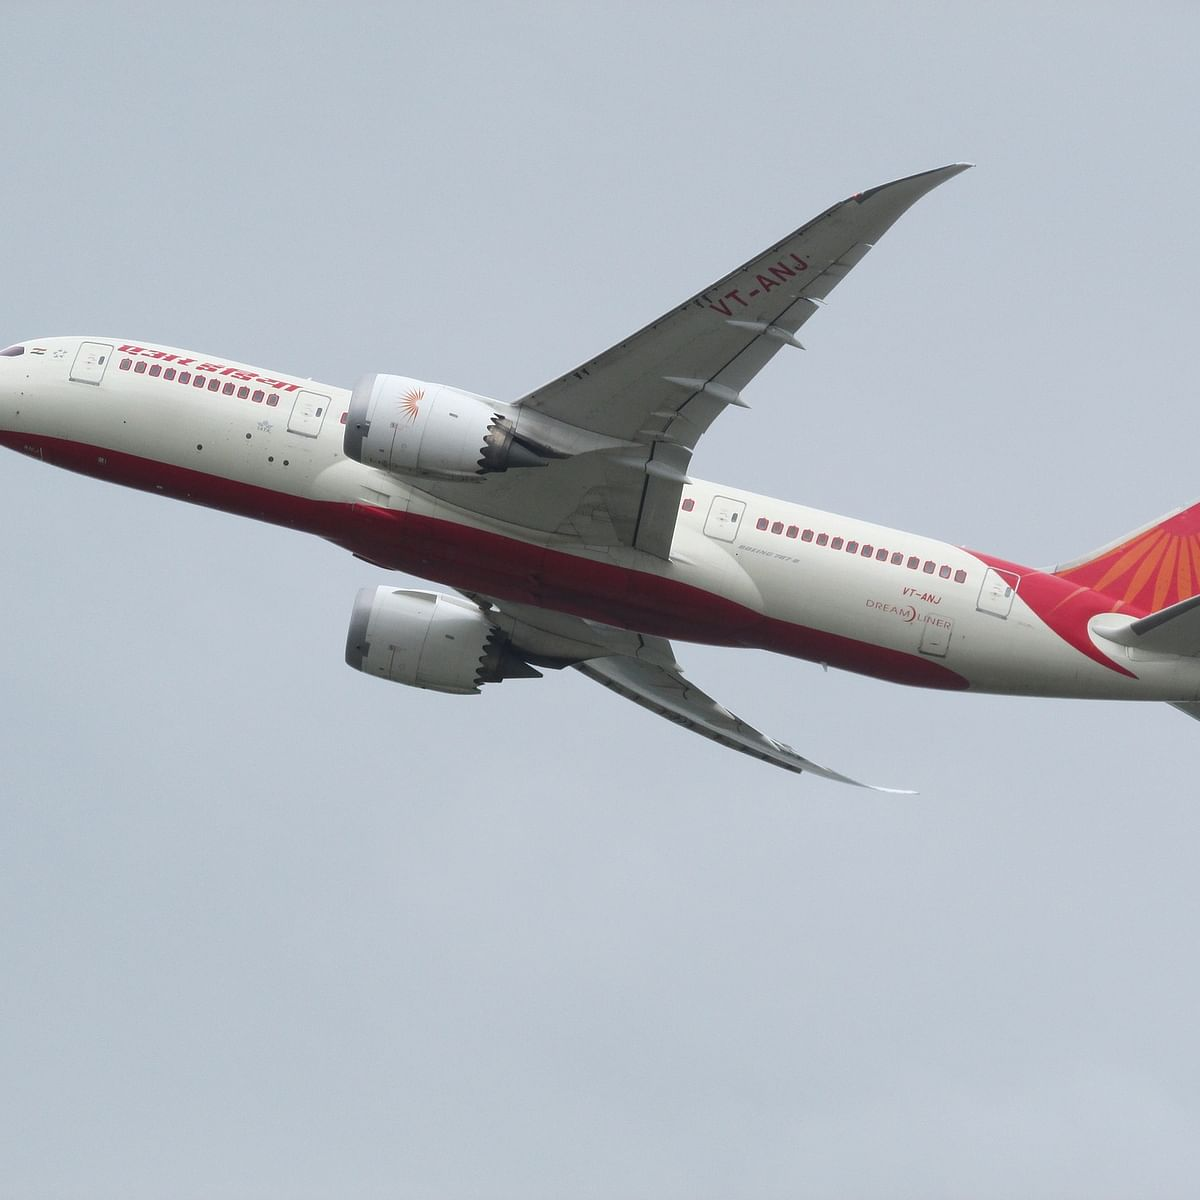 Turbulent Times: Air India says no employee will we fired – the story so far